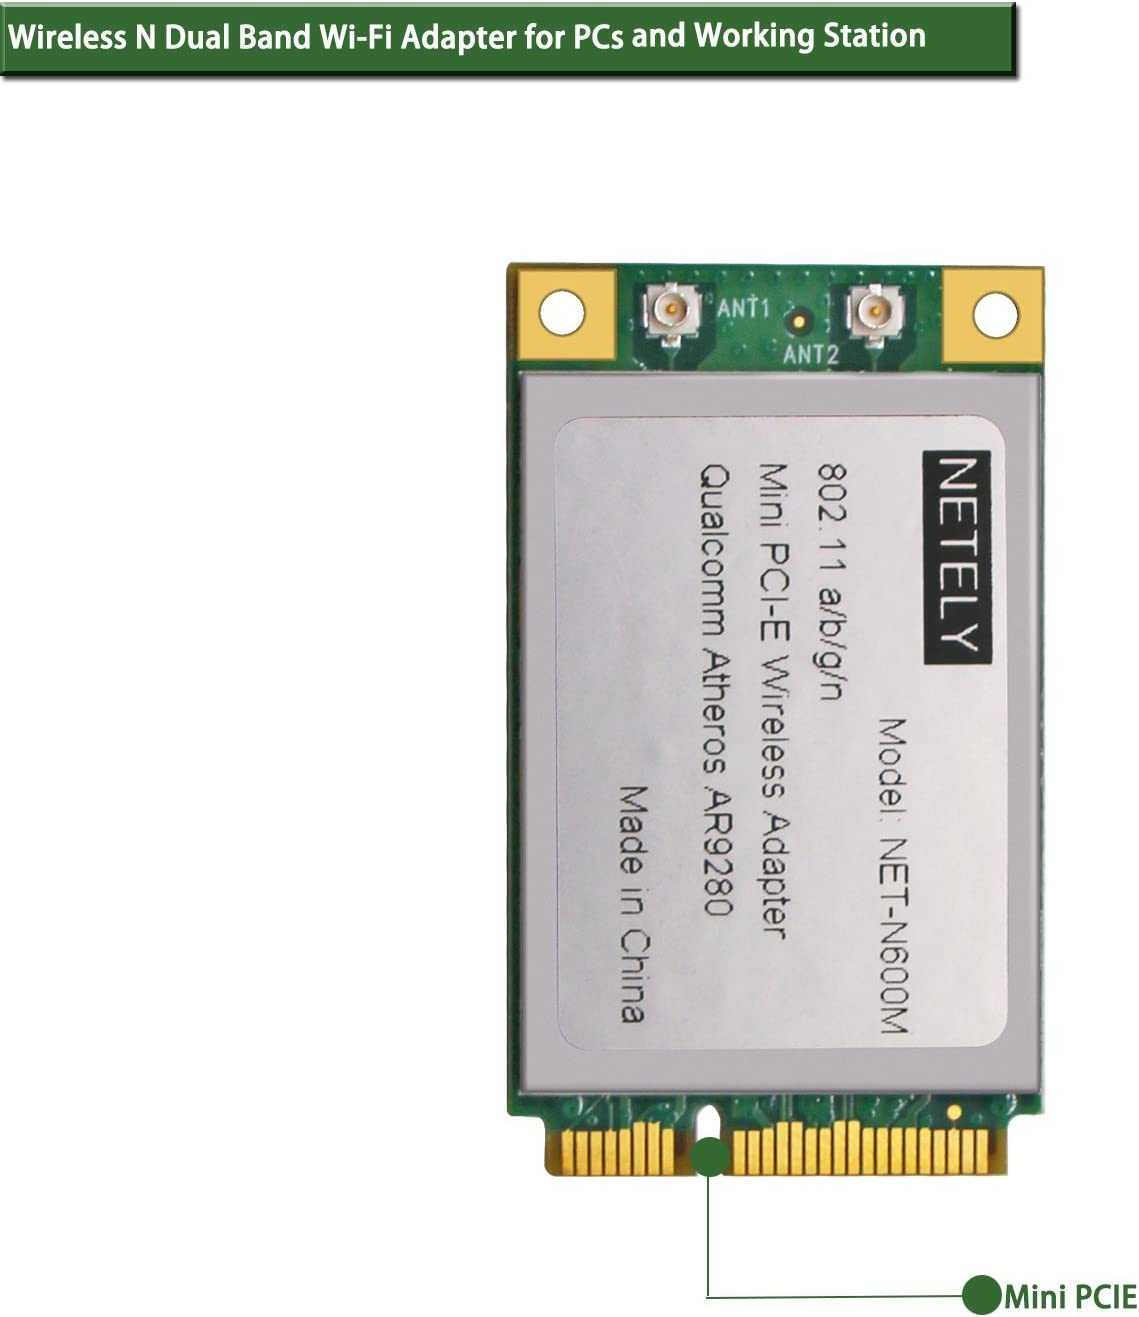 NETELY Dual Band Wireless N 600Mbps (2.4GHz 300Mbps or 5GHz 300Mbps) 2X2 MIMO 2-Stream Mini PCI-Express (PCIE) Wi-Fi Adapter- Wi-Fi Card for Laptop PCs and Industrial Device- Qualcomm Atheros AR9280